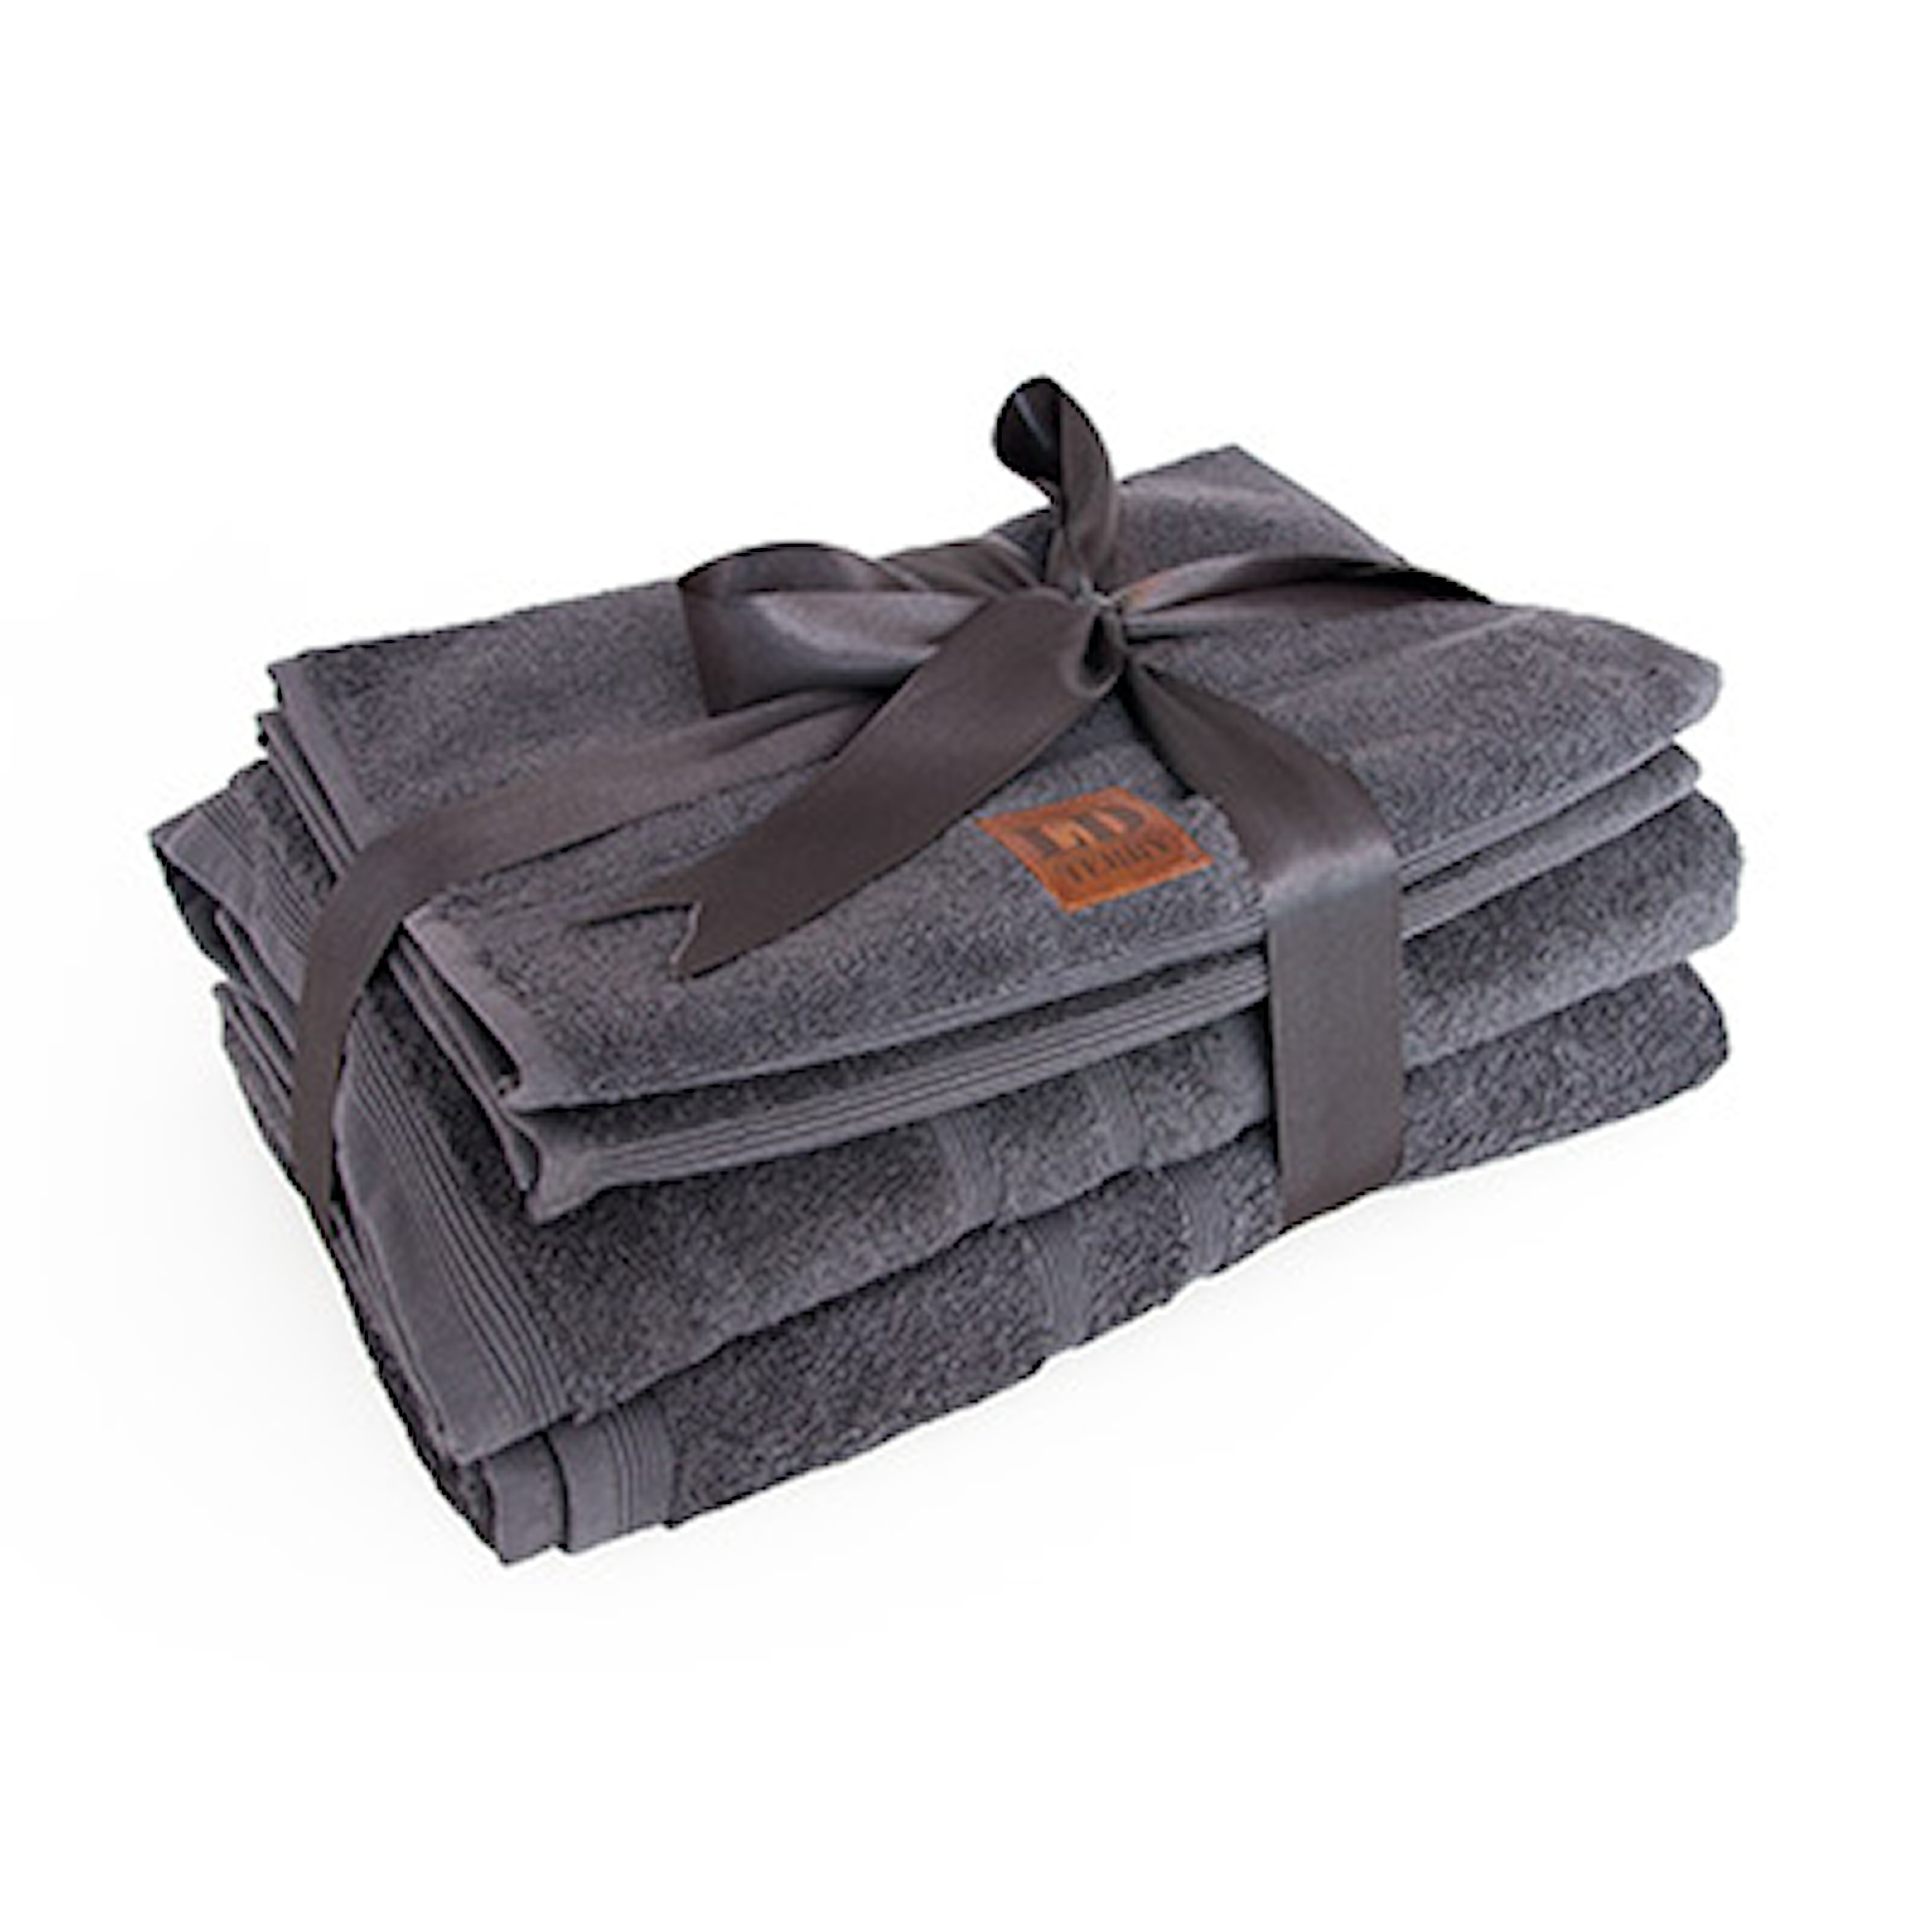 Anthracit, LD Terry Towel set with label, Handduksset från LD Terry, ,